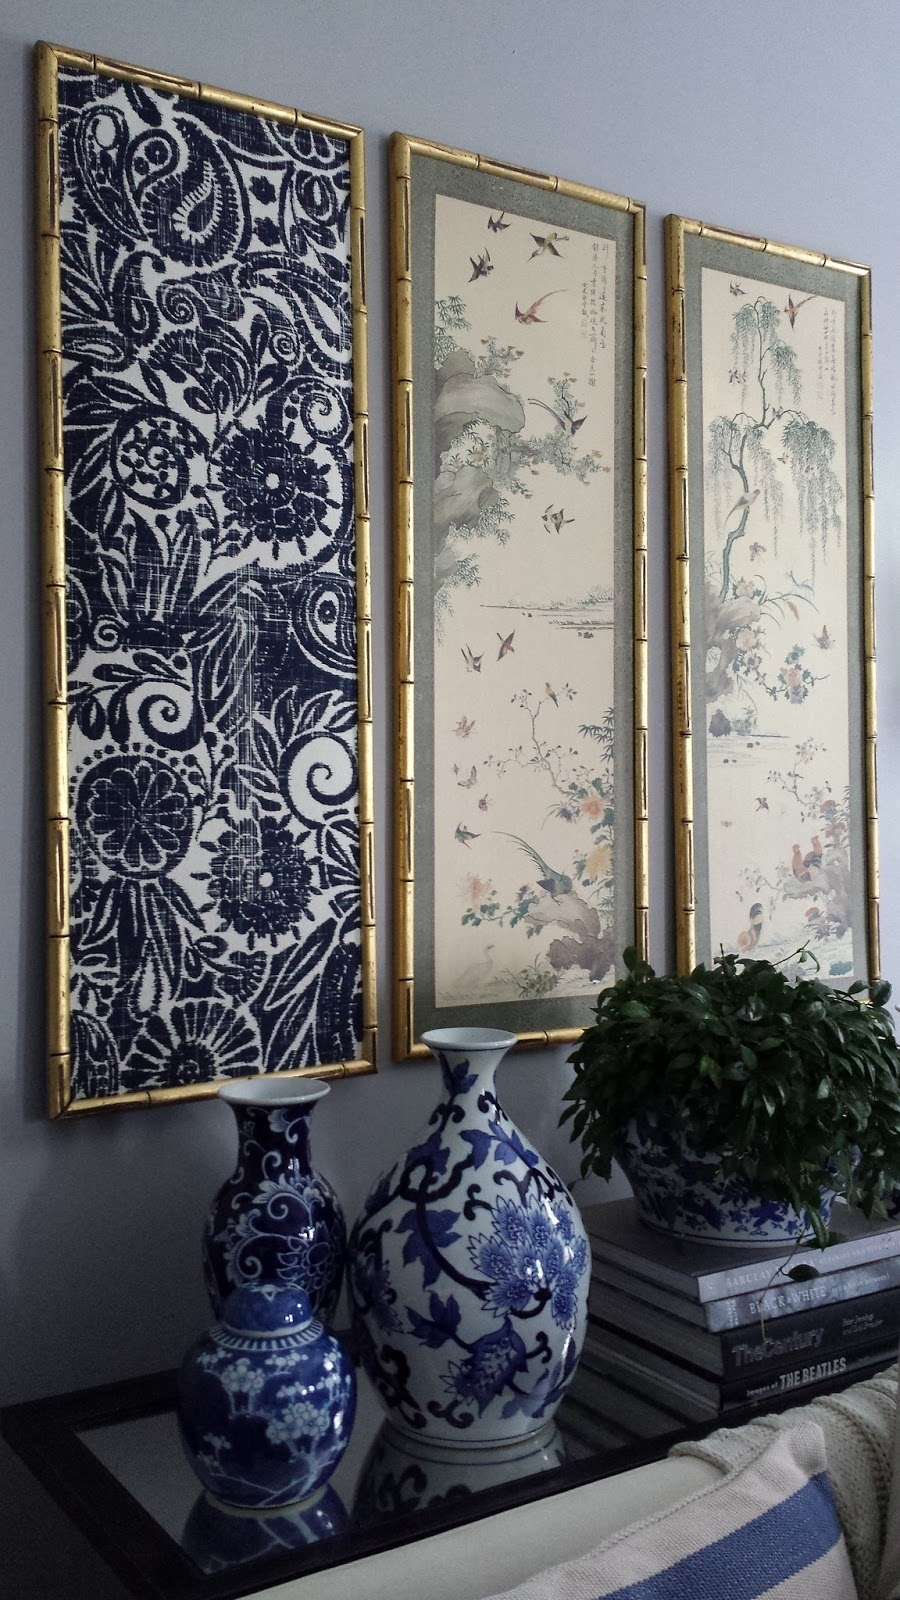 Focal Point Styling: Diy Indigo Wall Art With Framed Fabric Throughout Most Recent Ikat Fabric Wall Art (Gallery 2 of 15)